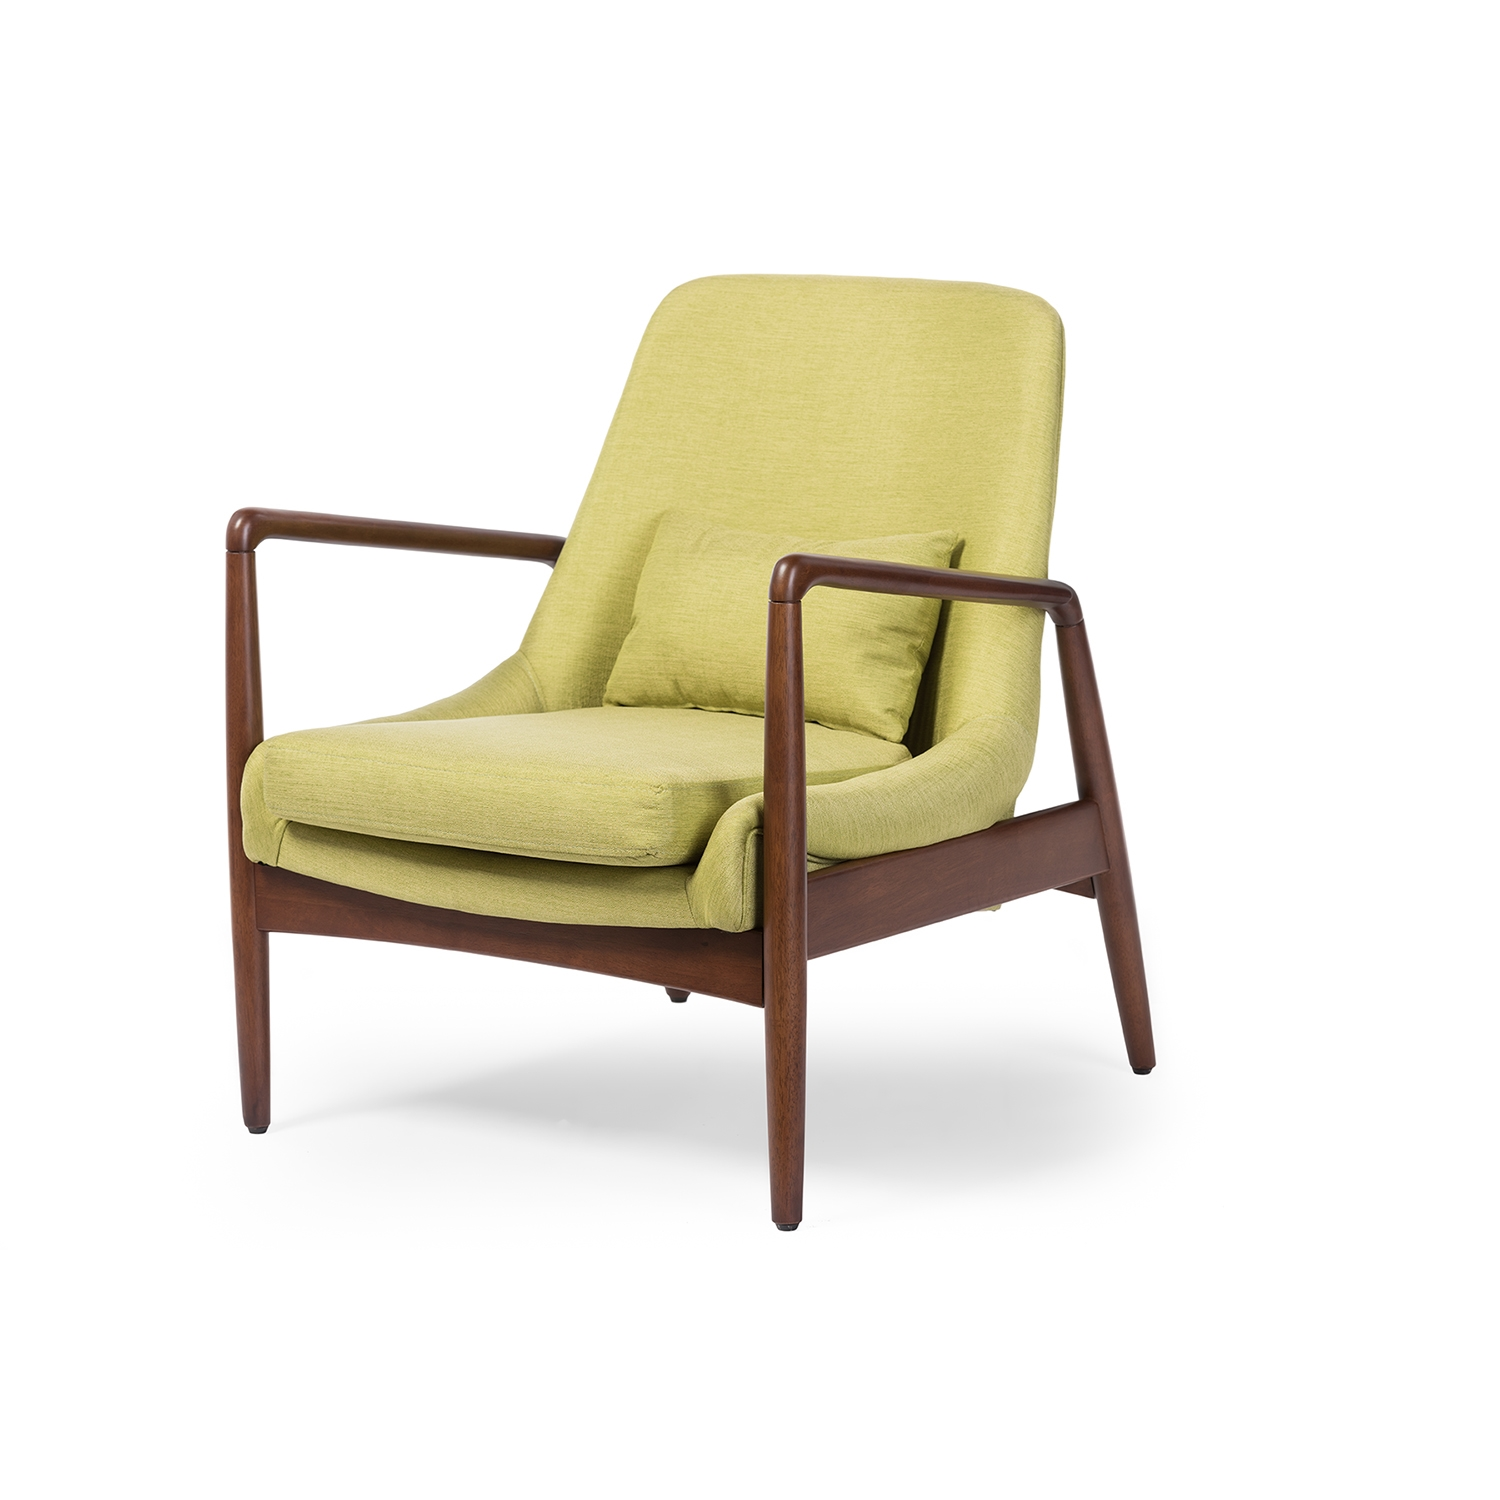 baxton studio modern leather accent chair design basics carter mid century retro green fabric